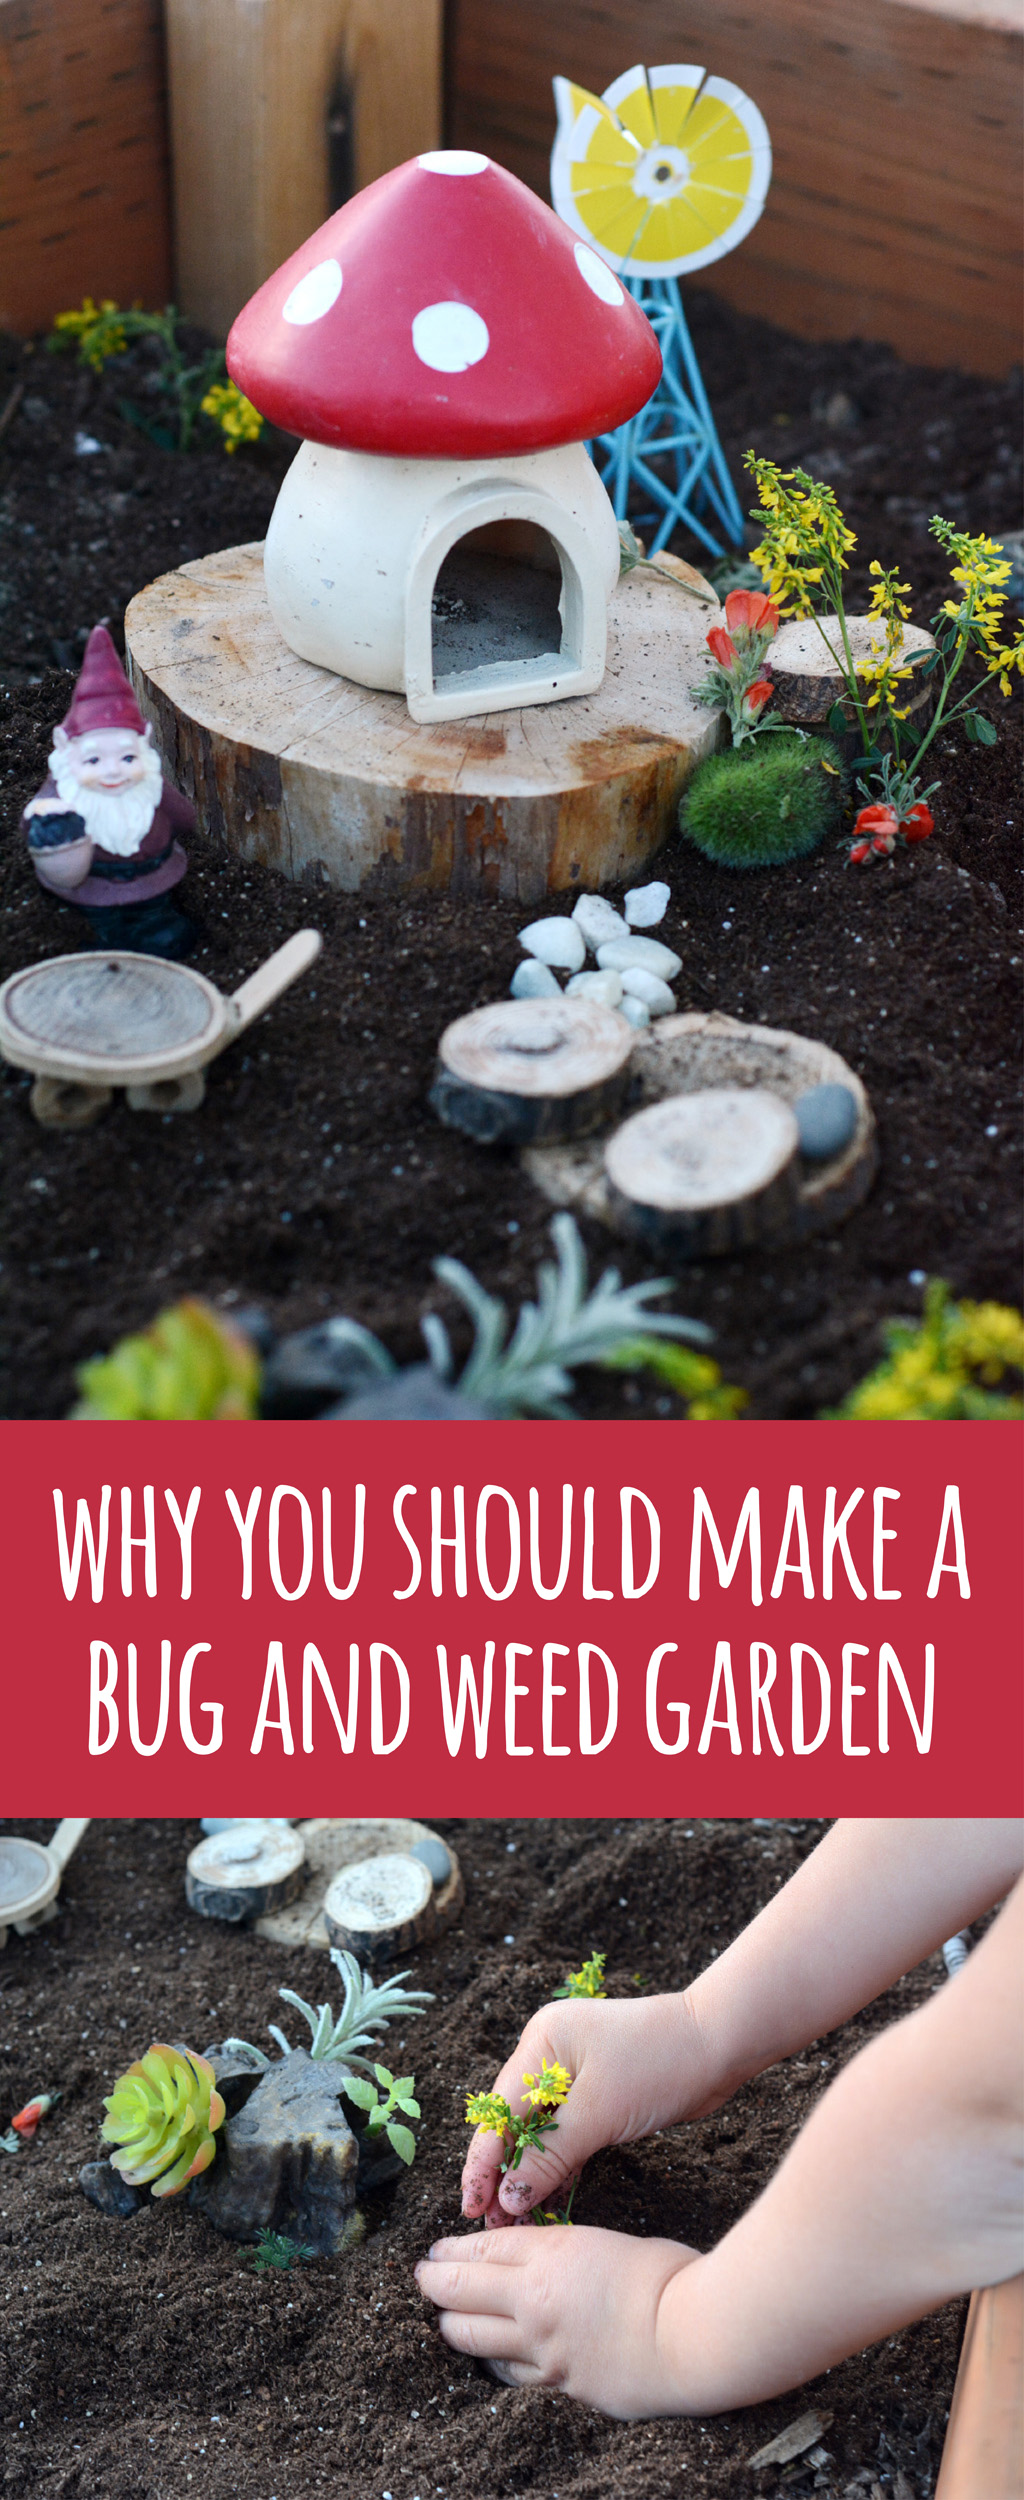 DIY Bug Garden - Give your kids a place to plant all those beautiful flower weeds they pick. The bugs will love living in a bug garden over a glass jar too.